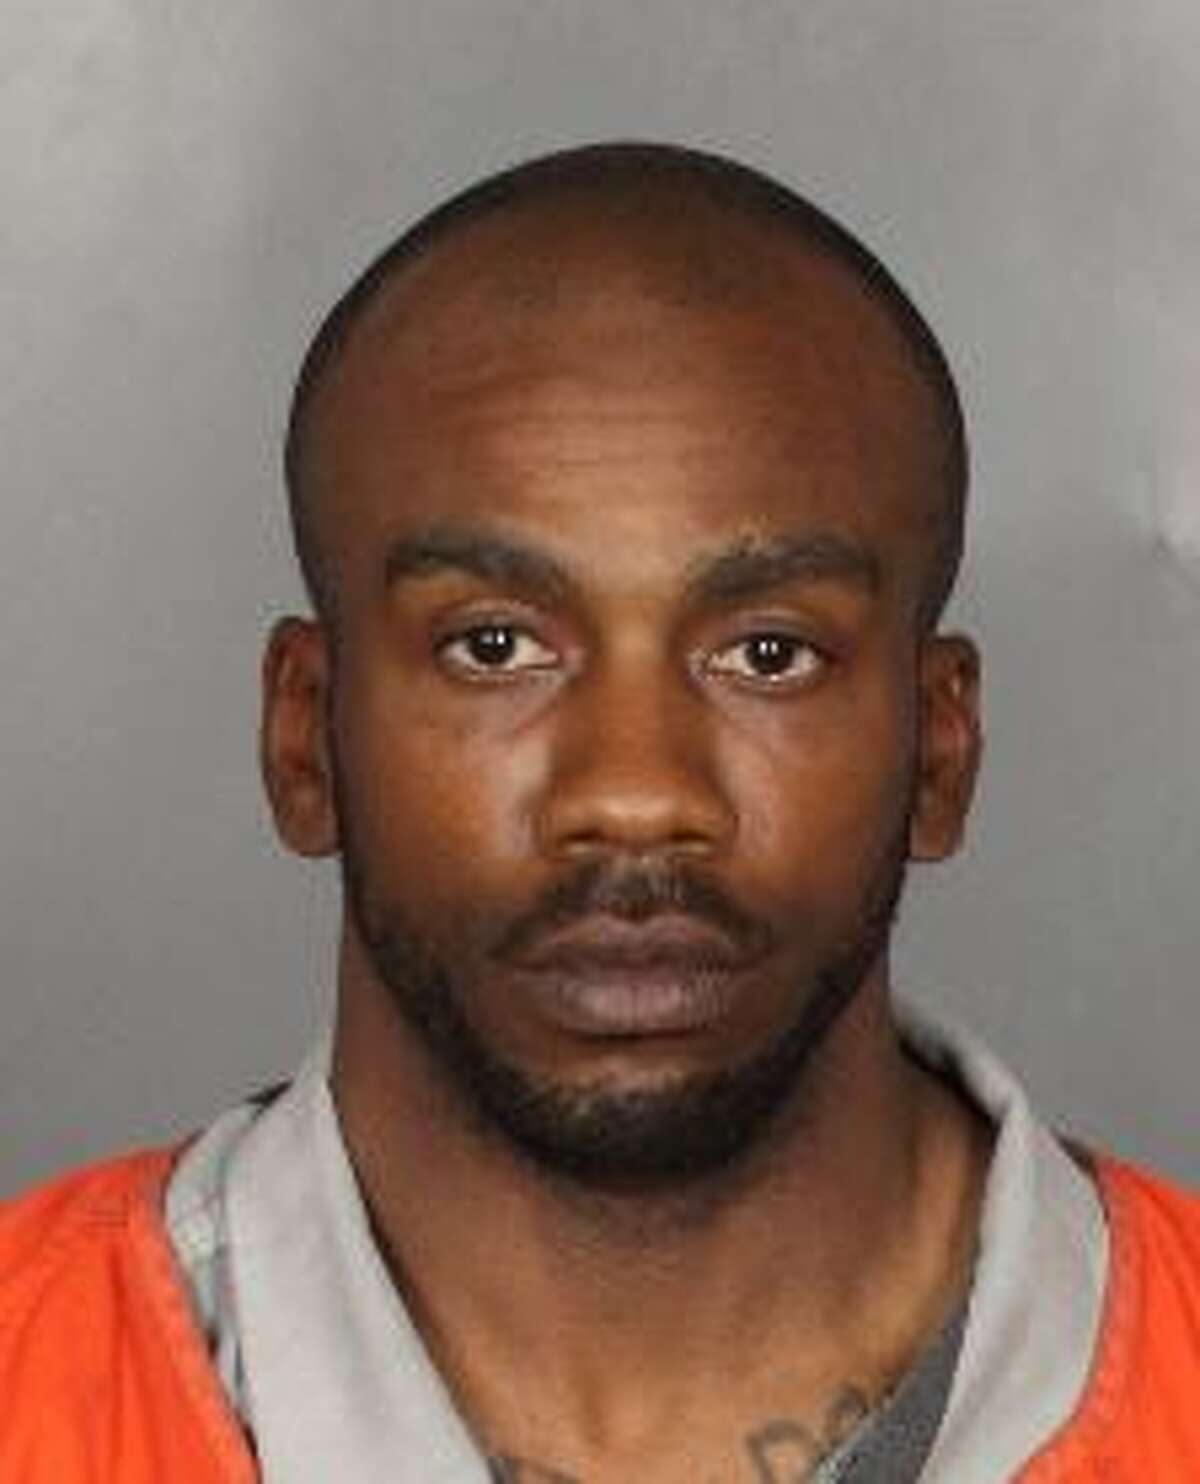 Lavodges Ray Greer, 31, was arrested on a state jail felony charge of forgery of a financial instrument.